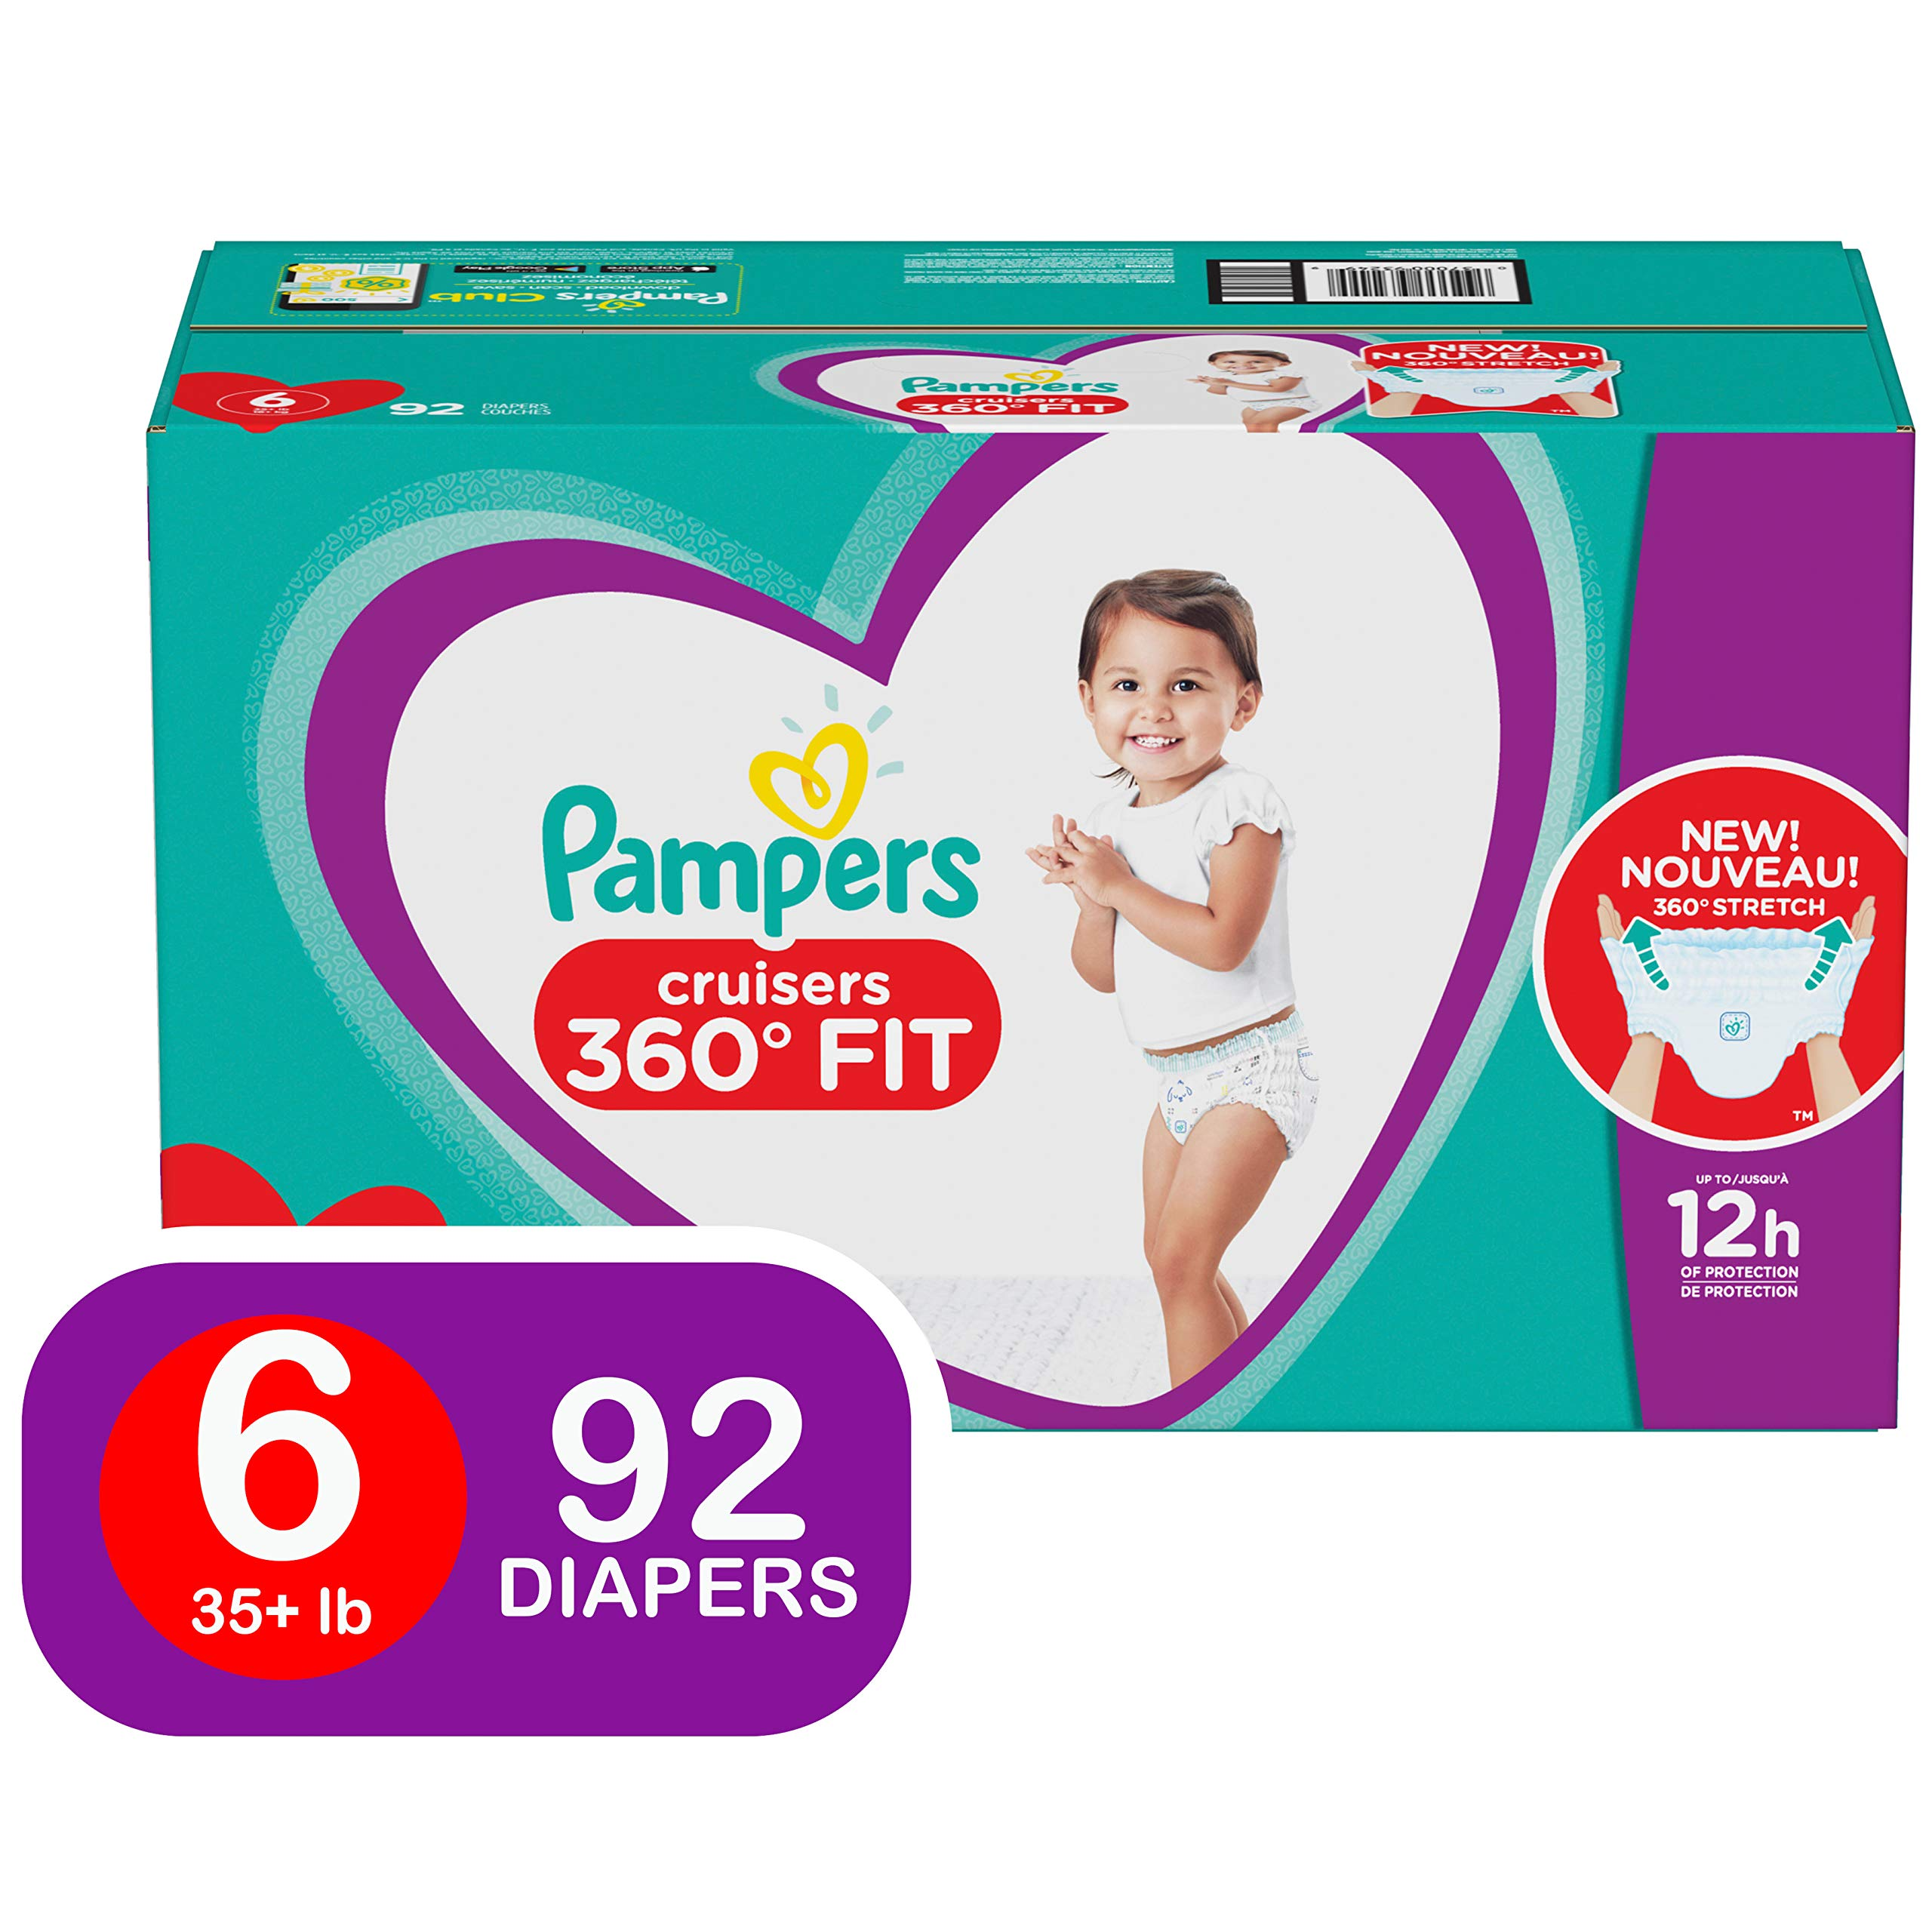 Diapers Size 6, 92 Count - Pampers Pull On Cruisers 360˚ Fit Disposable Baby Diapers with Stretchy Waistband, ONE MONTH SUPPLY